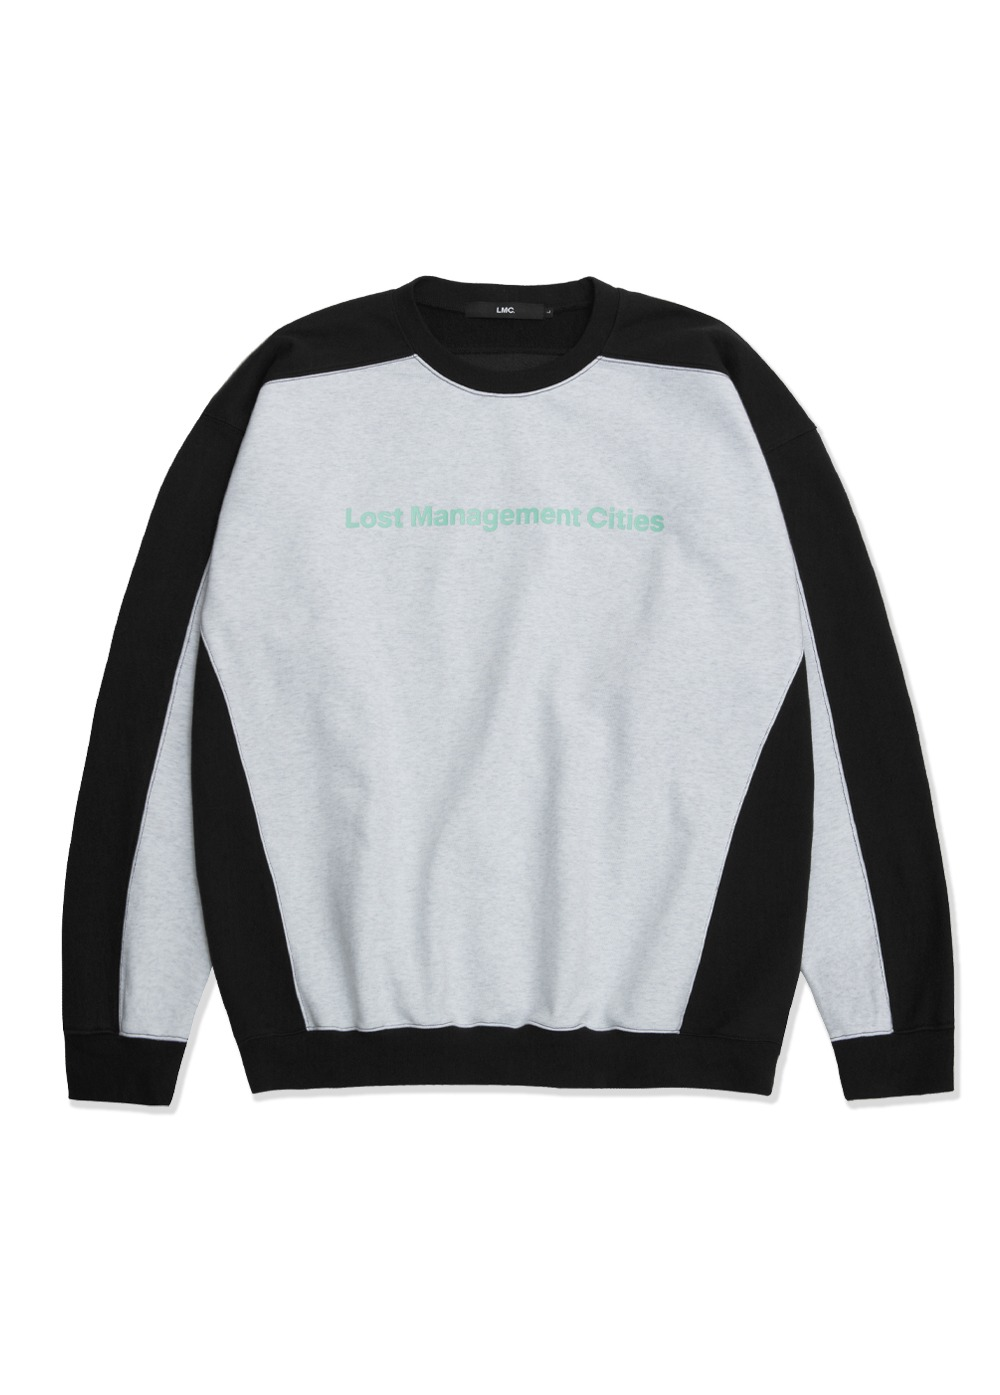 LMC TRI COLOR OVERSIZED SWEATSHIRT lt. heather gray